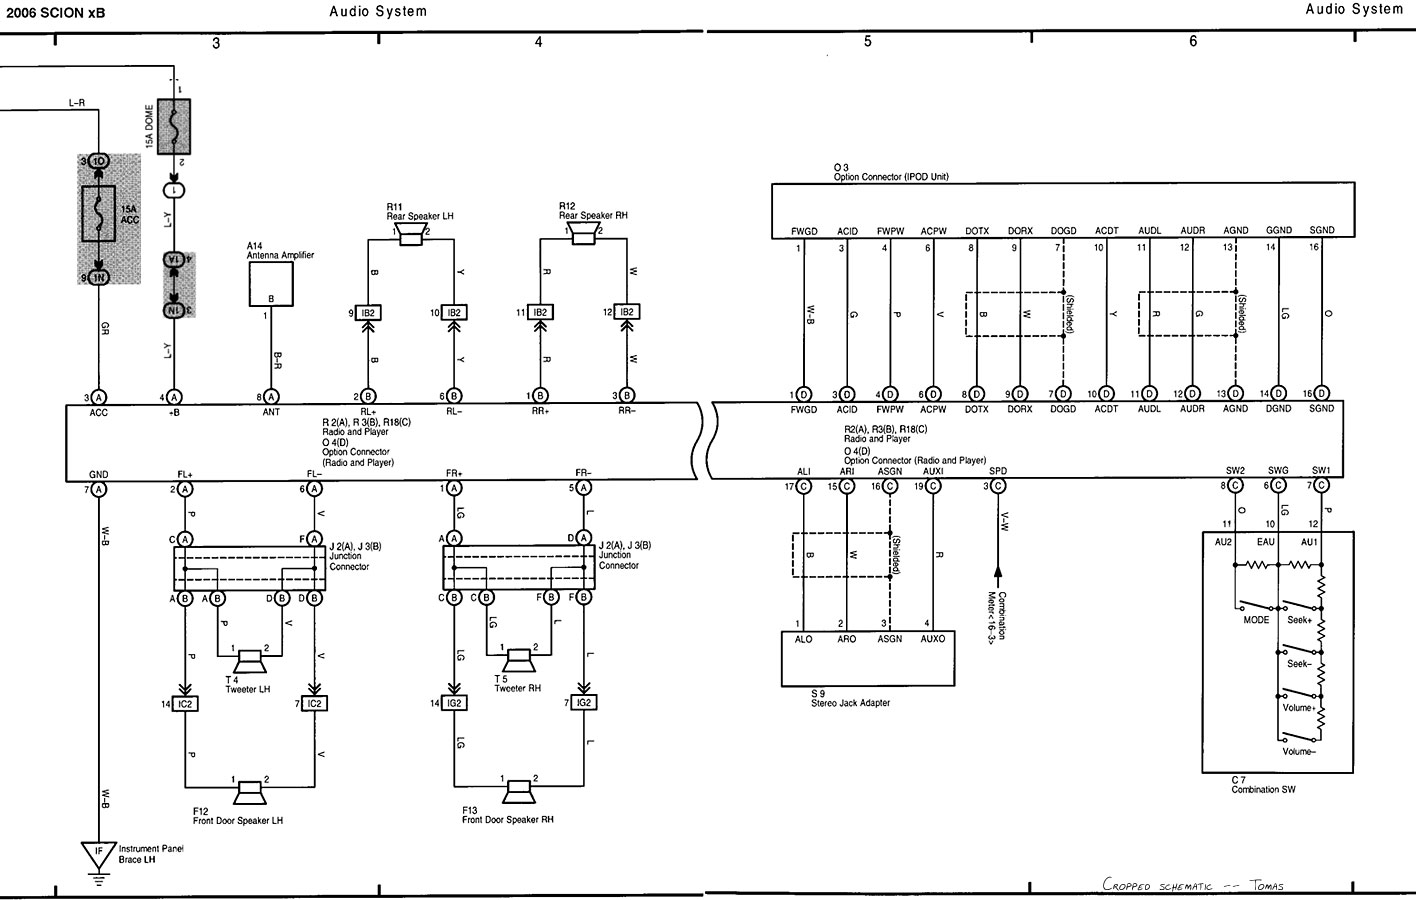 hight resolution of scion xd fuse diagram control cables wiring diagram 2008 ford mustang wiring diagram 2006 scion